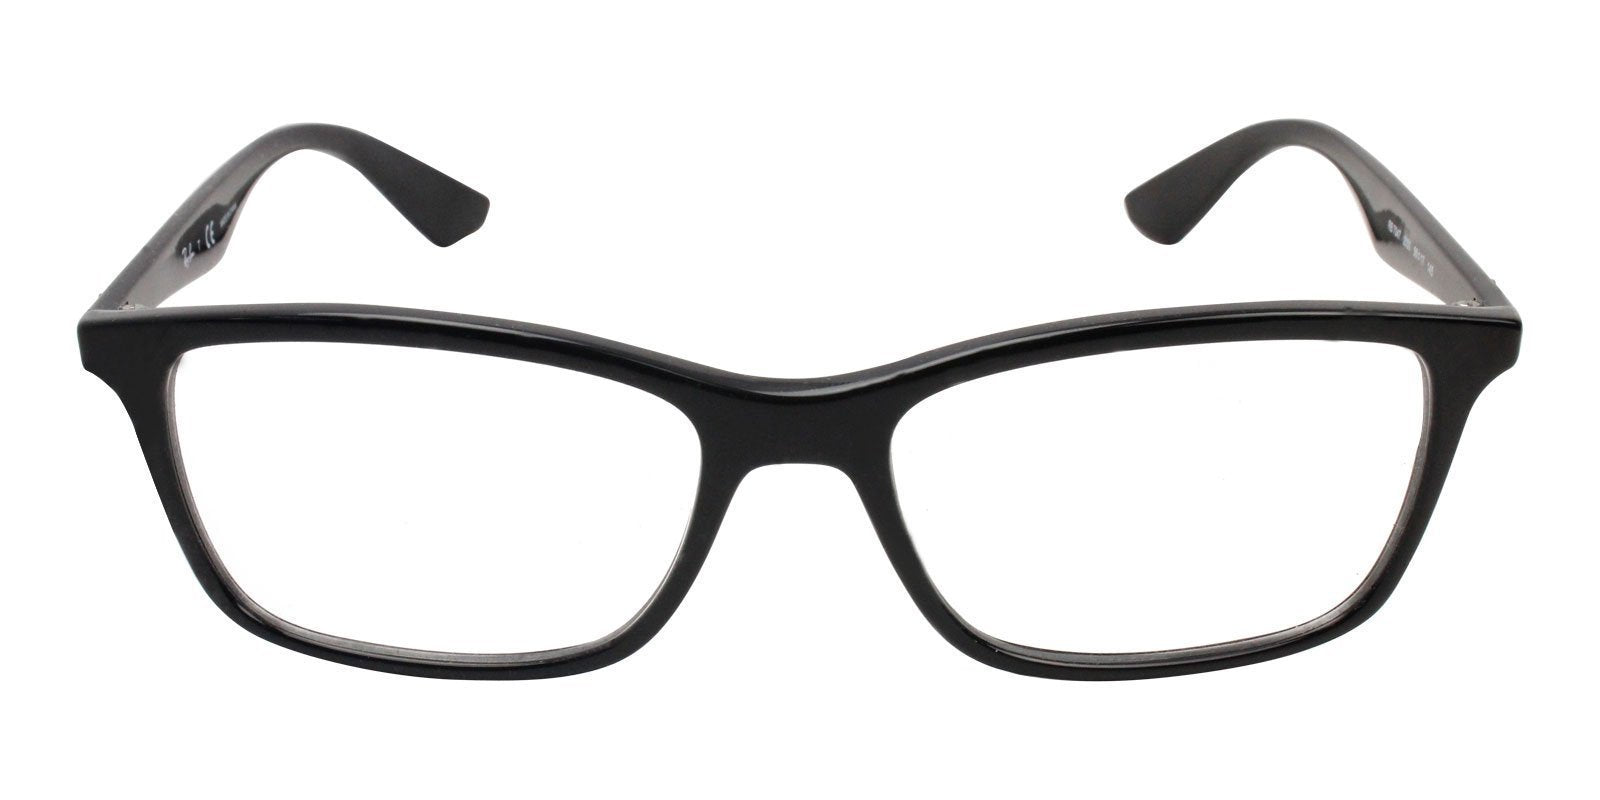 Ray Ban Rx - RX7047 Black Rectangular Unisex Eyeglasses - 56mm-Eyeglasses-Designer Eyes